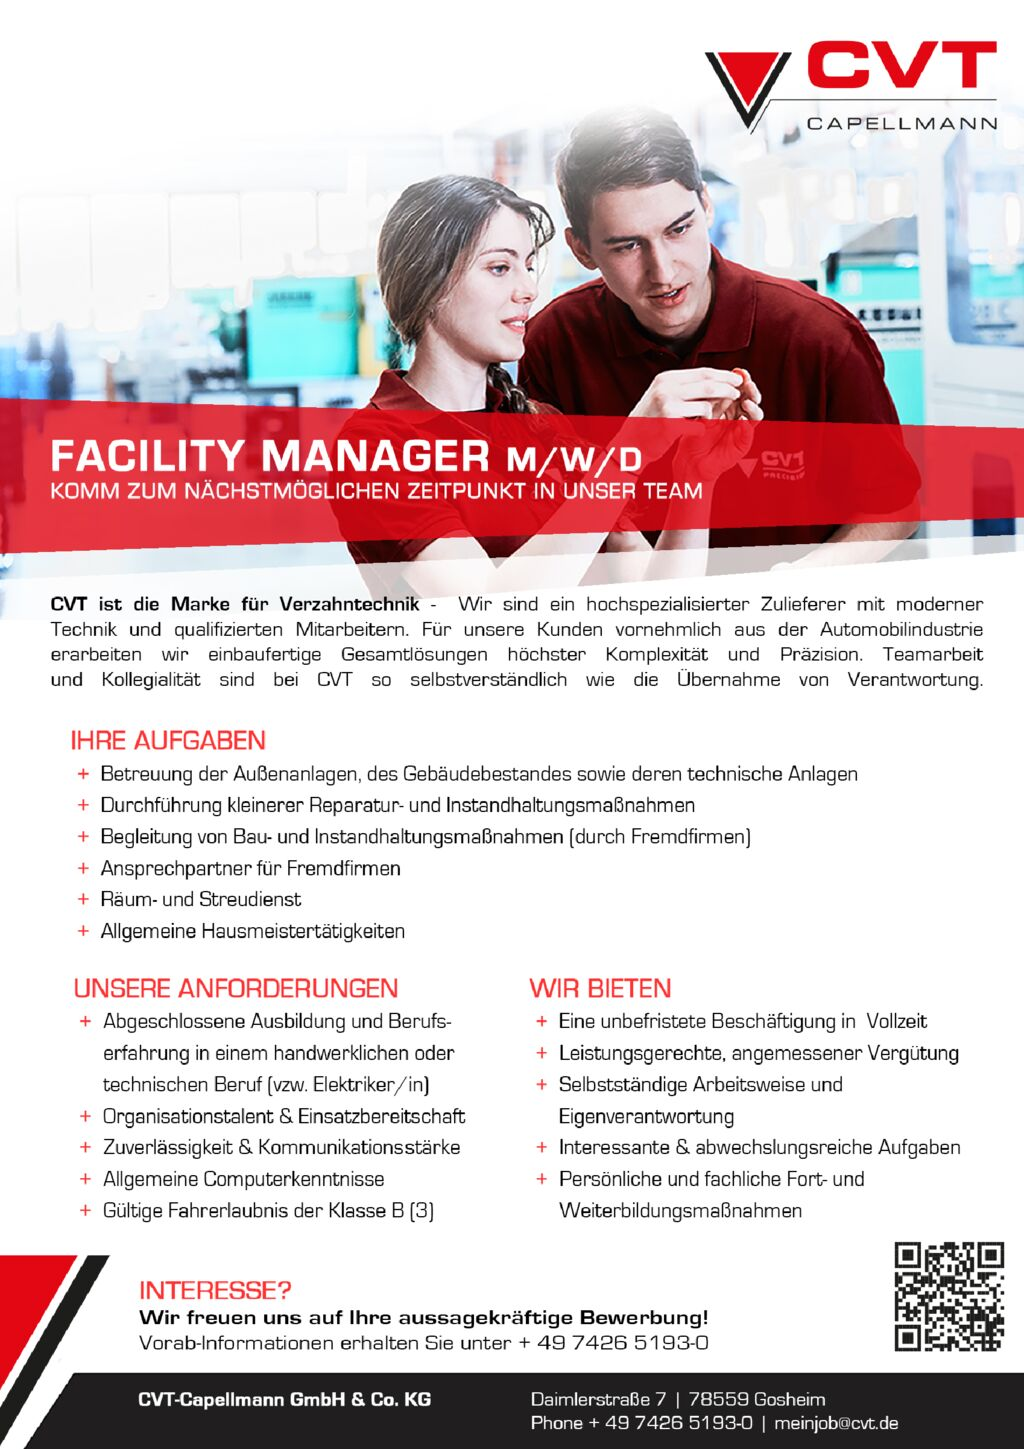 thumbnail of 2019 06 25 Stellenanzeige Facility Manager AMA